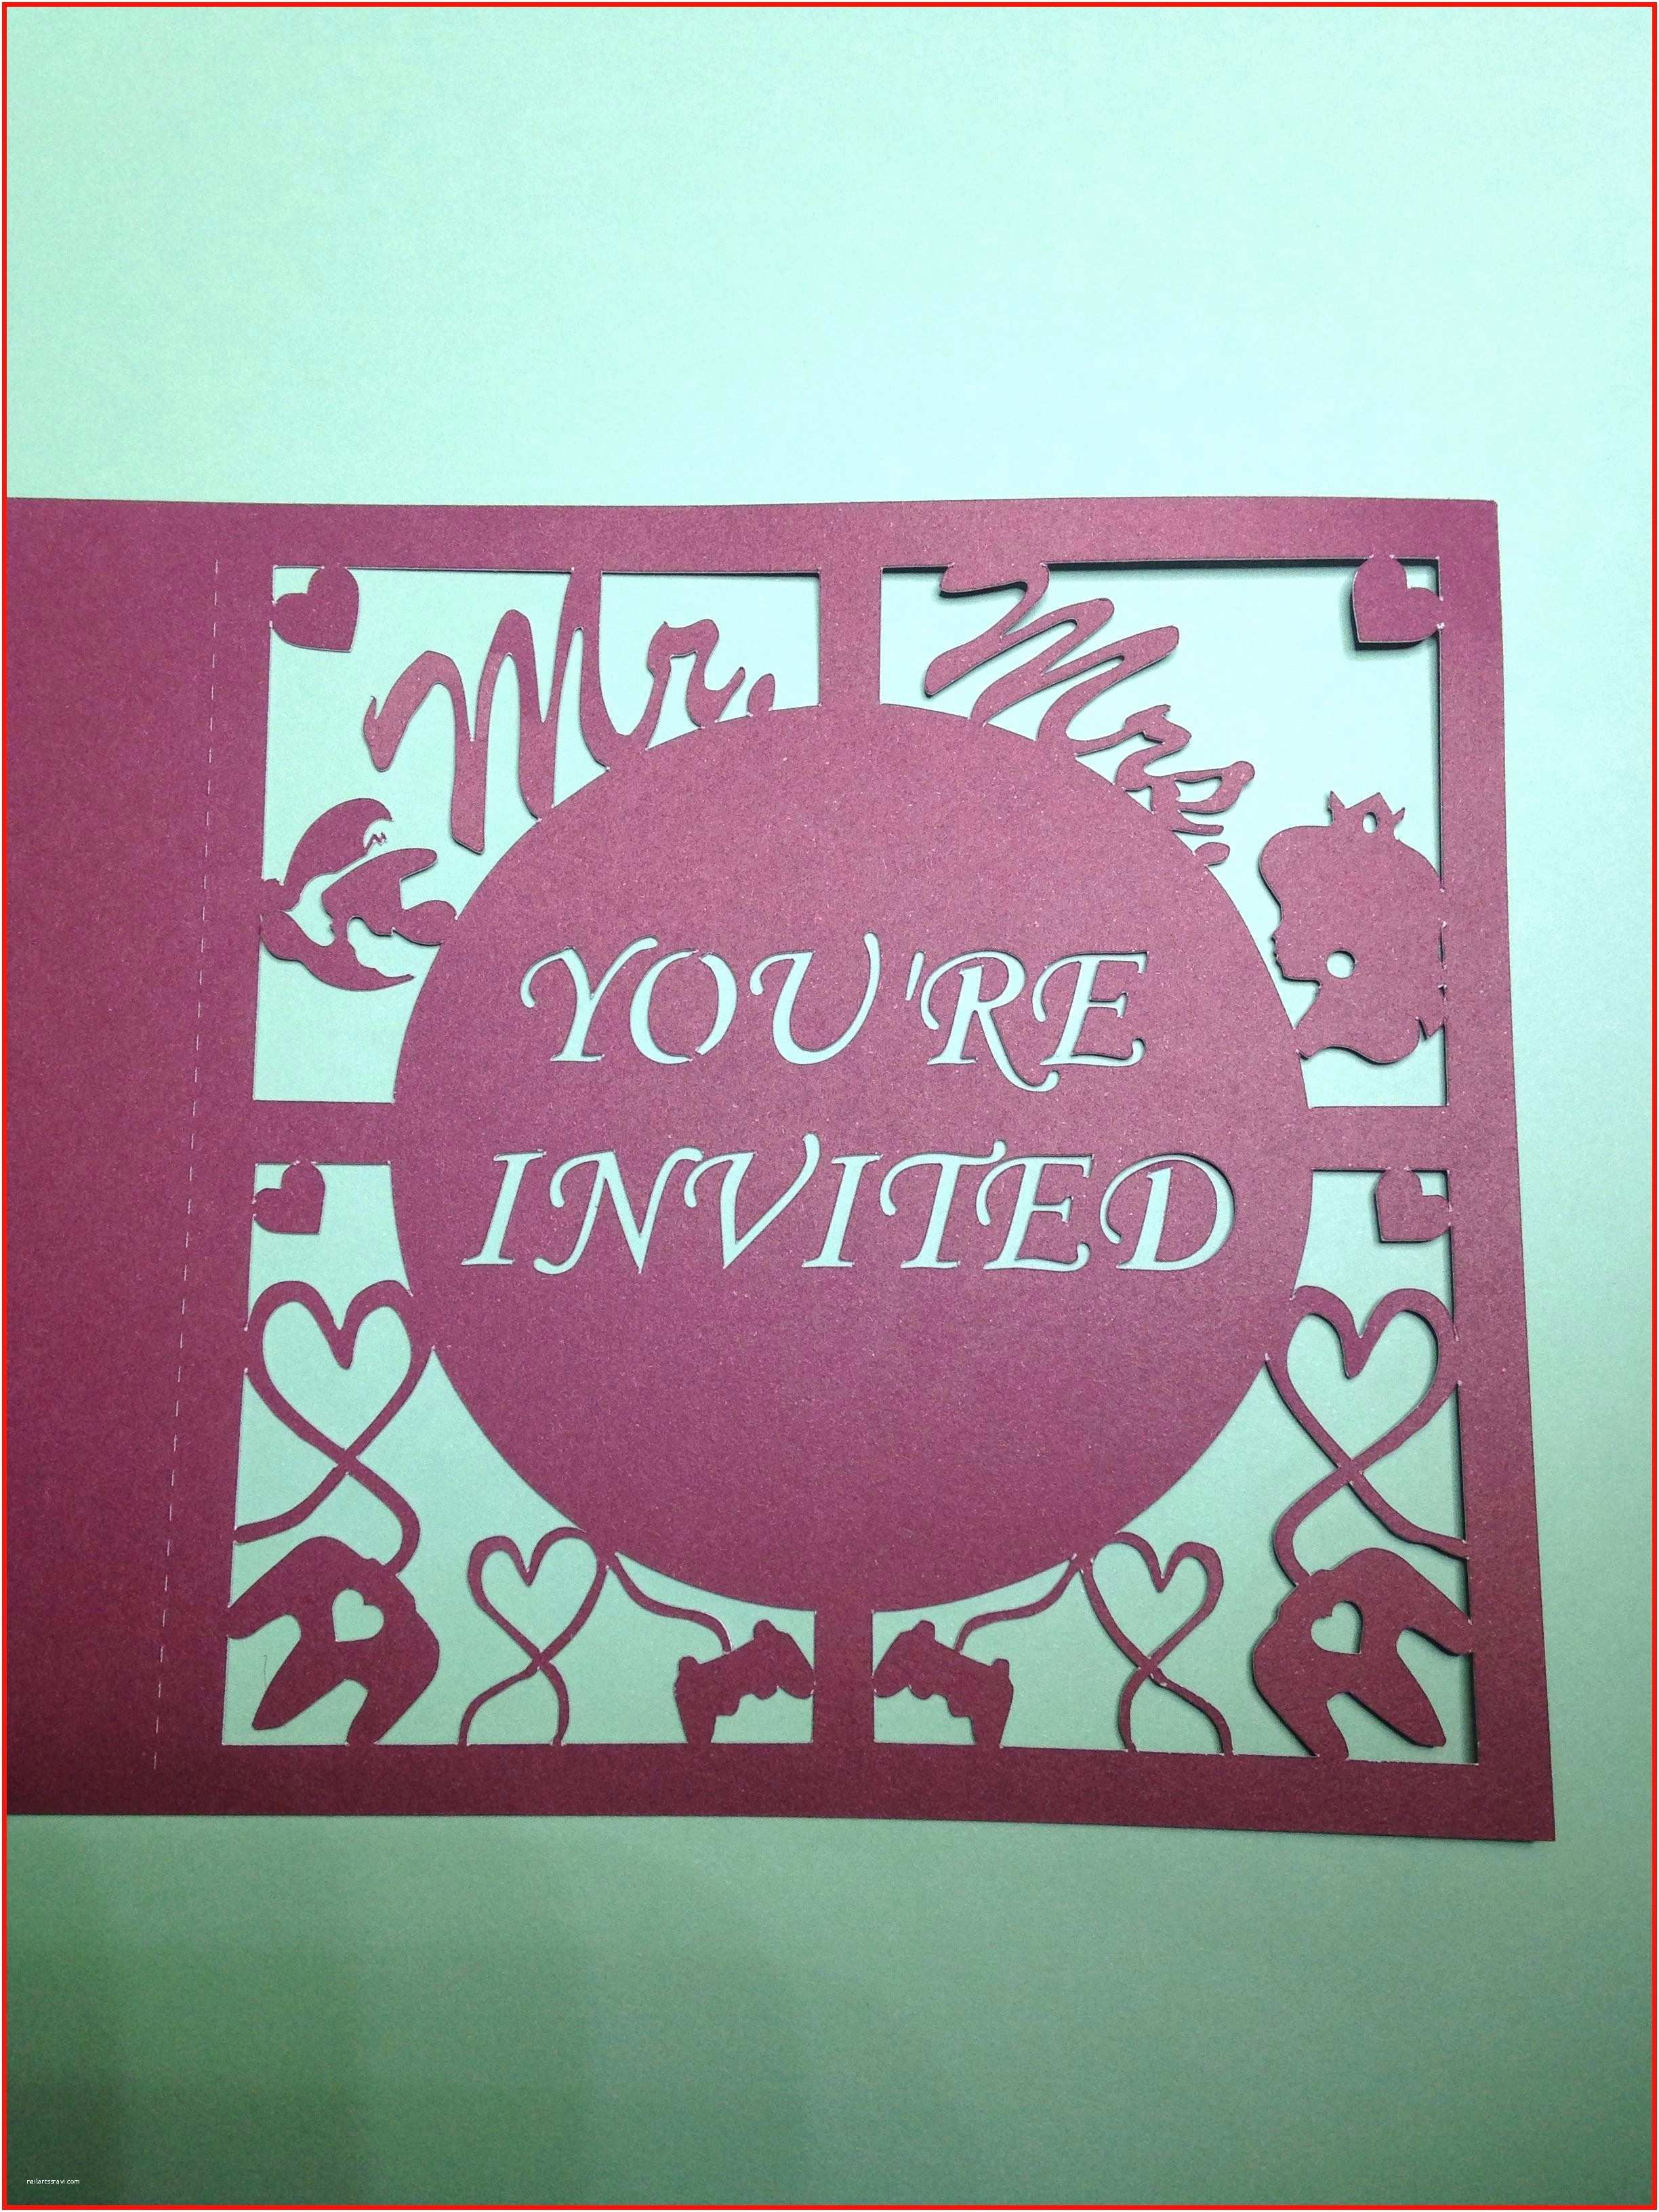 Nerdy Wedding Invitations Nerdy Wedding Invitations Rough Draft for the Front